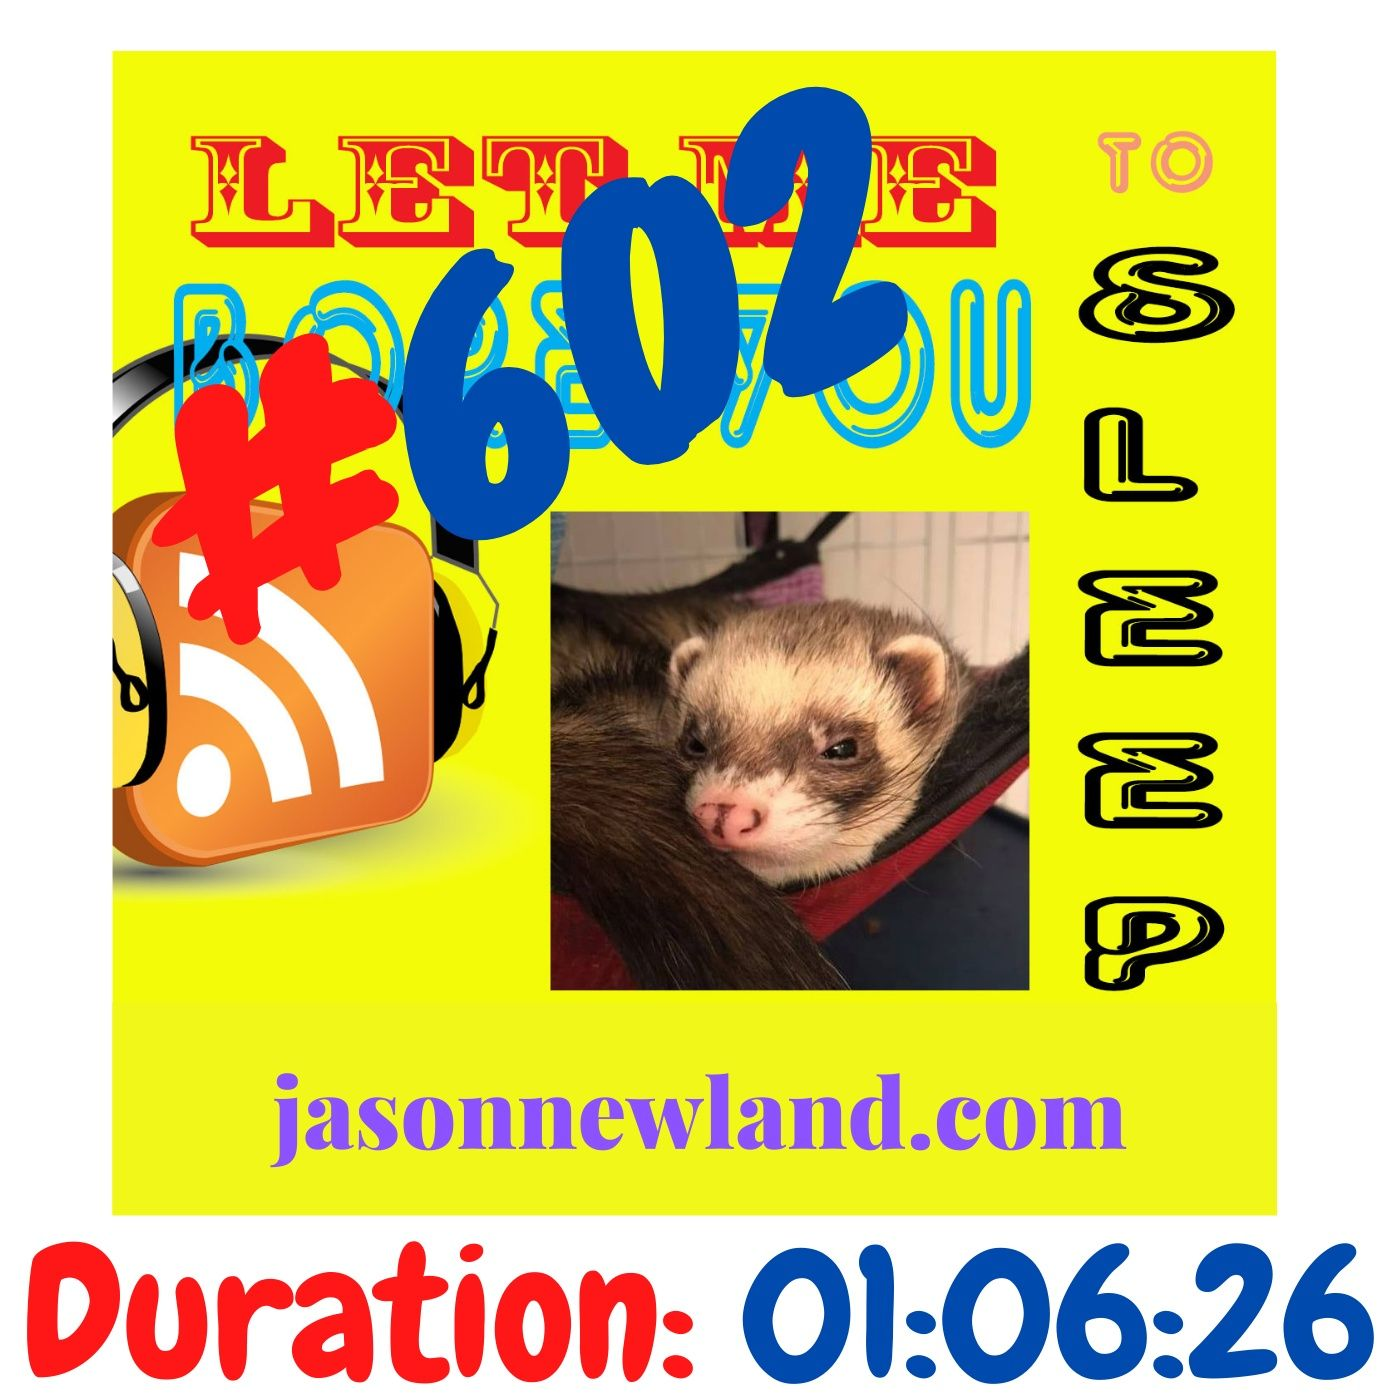 "#602 Let me bore you to sleep ""THE FAT MOUSE IN MY KITCHEN"" - Jason Newland (26th February 2021)"